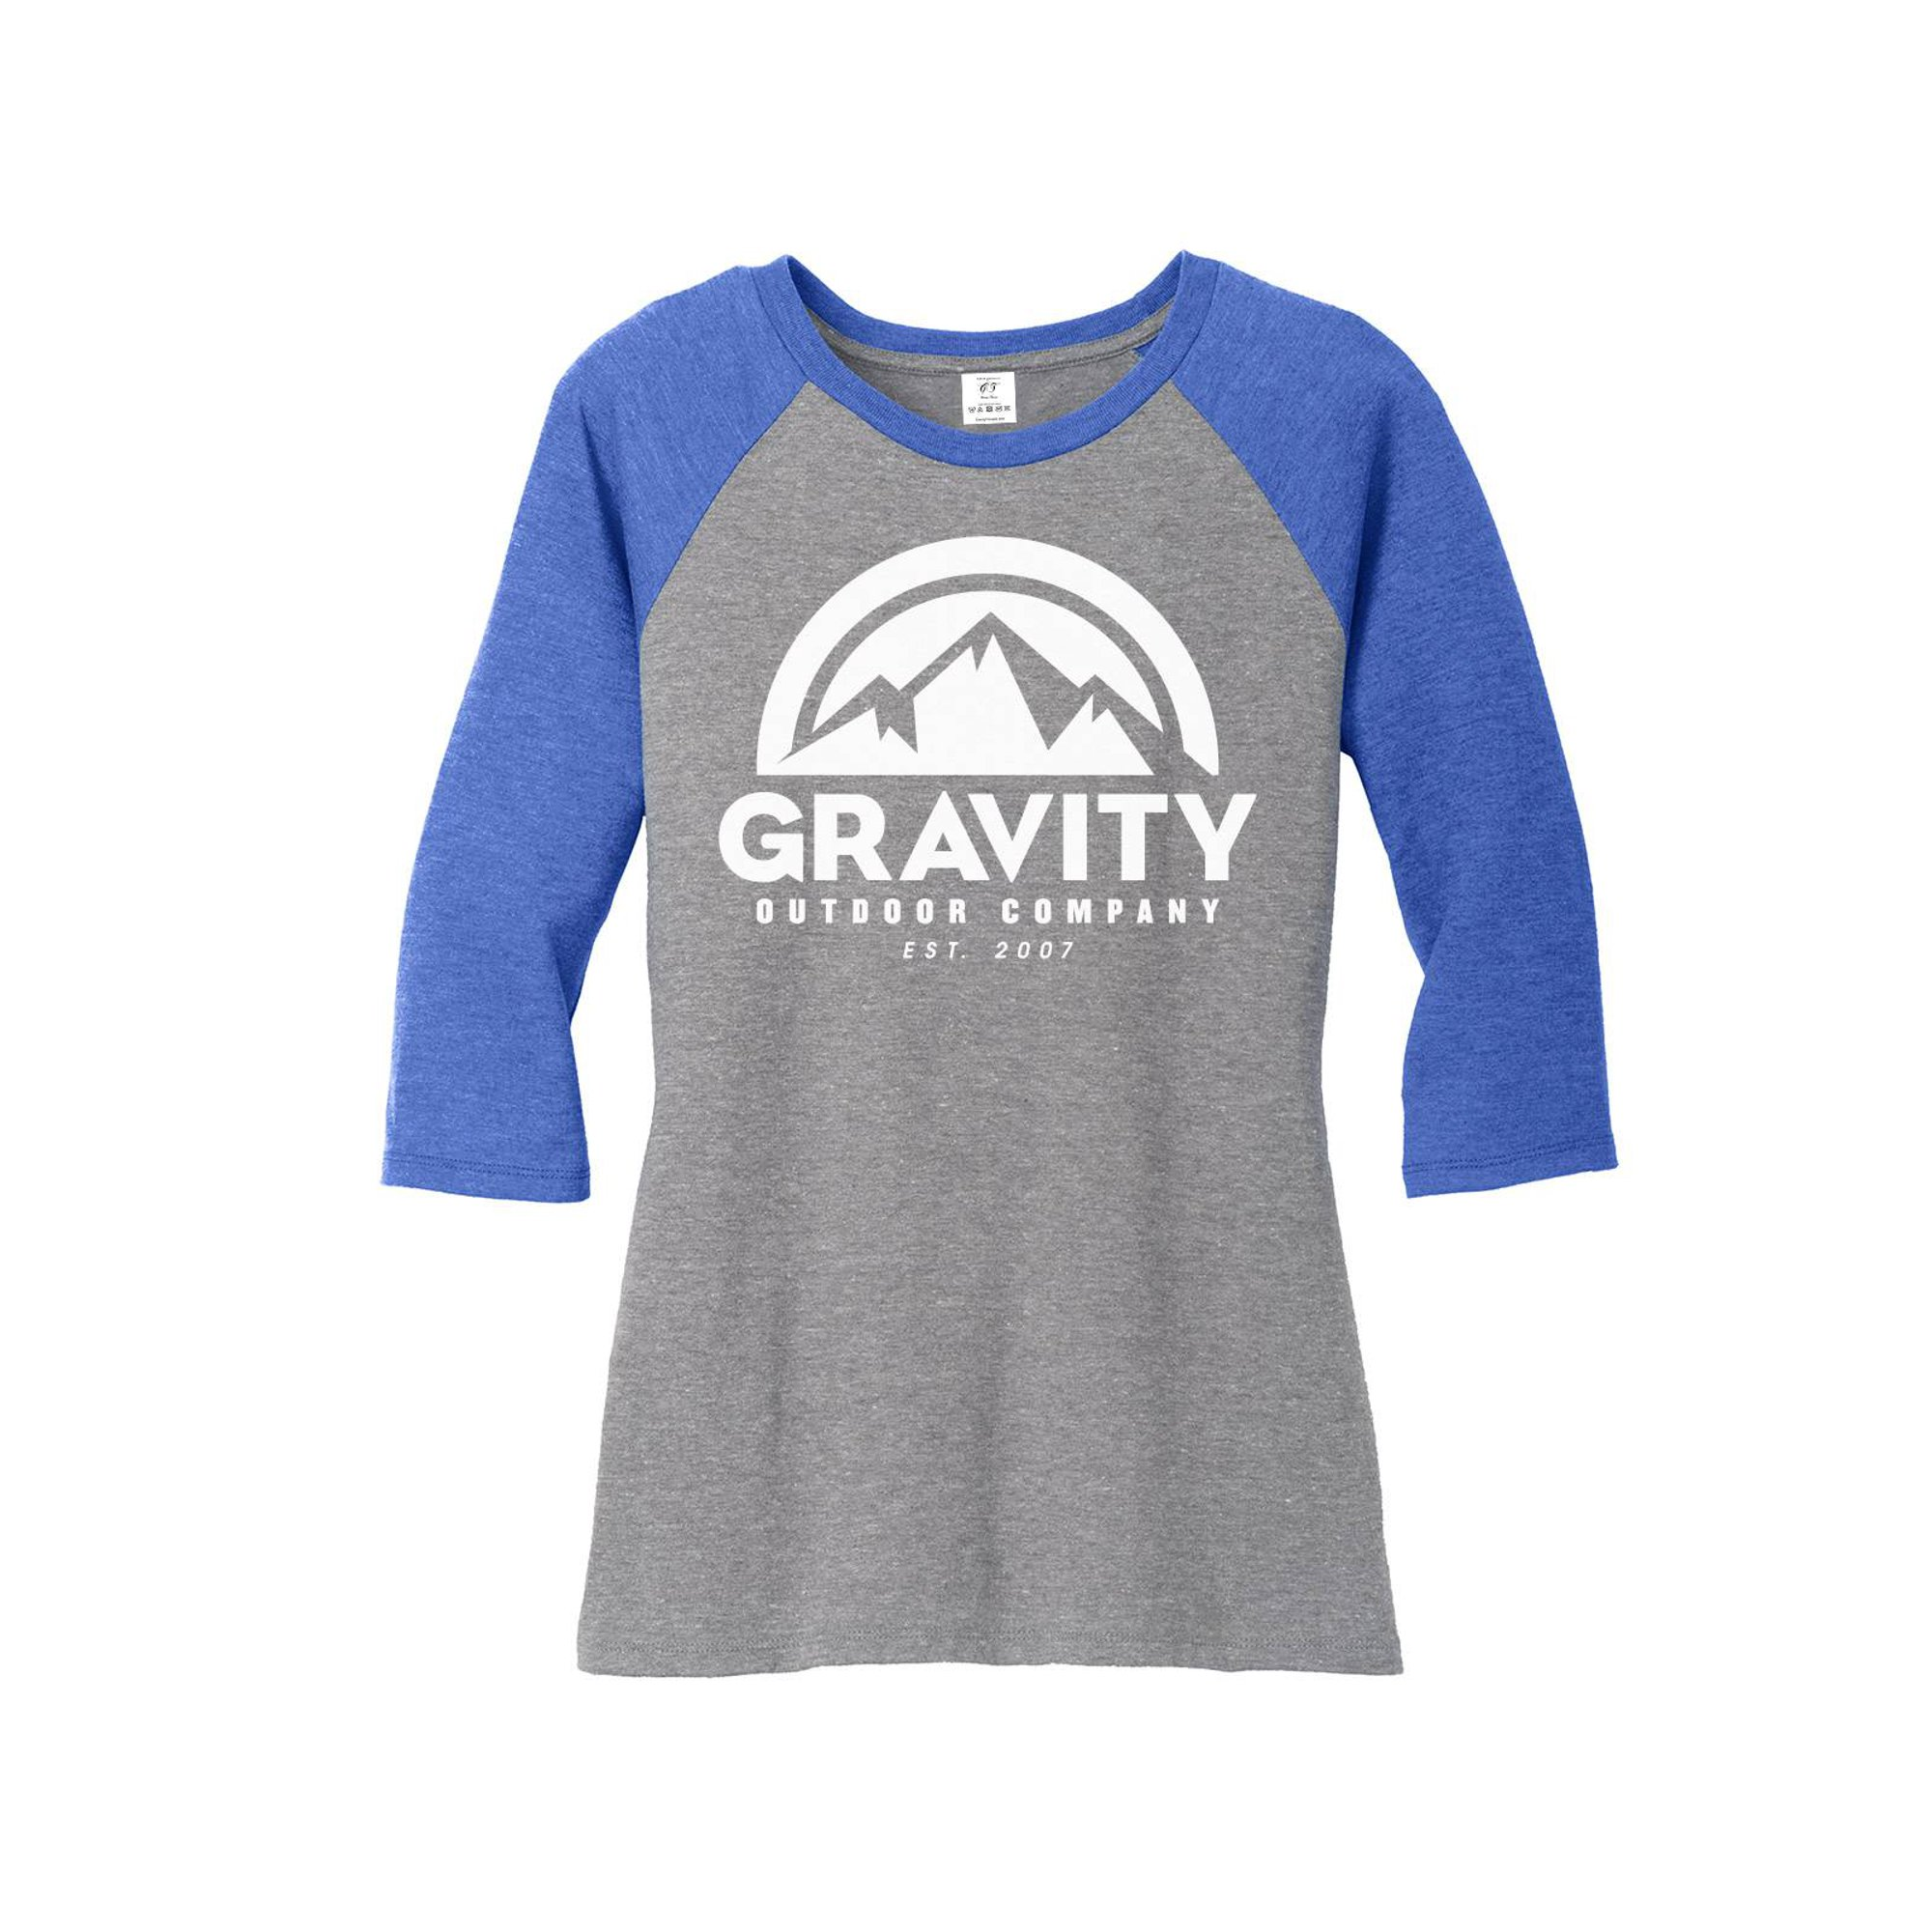 ddc03ac75c4079 Womens Gravity Outdoor Co. 3/4-Sleeve Raglan Shirt - White Logo - Royal/Grey  - 2XL | Walmart Canada